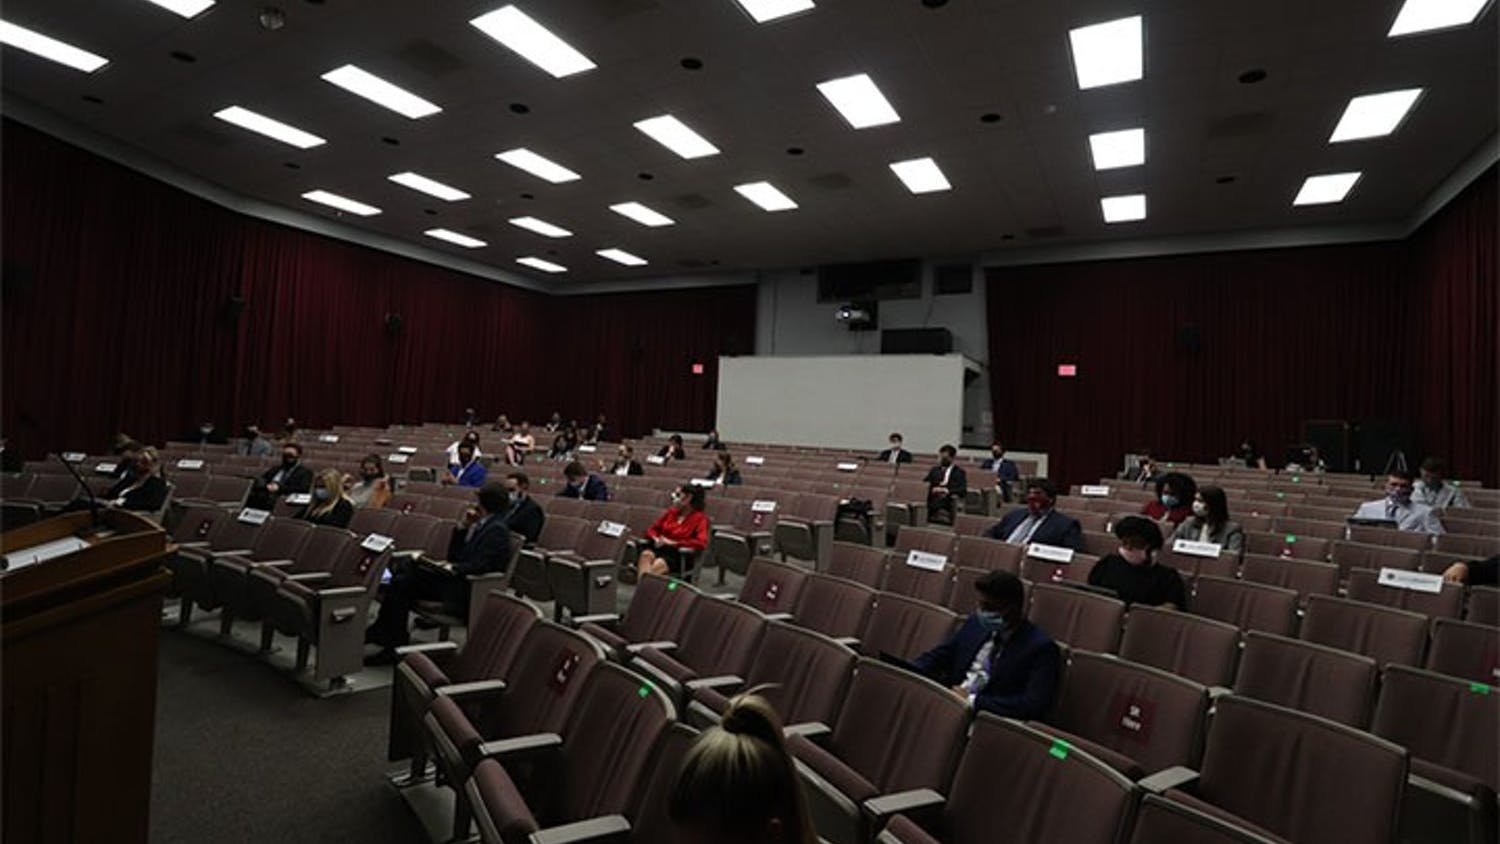 Student senate is held in the Russell House Theater. The chairs within the theater are marked to follow campus guidelines regarding COVID-19.